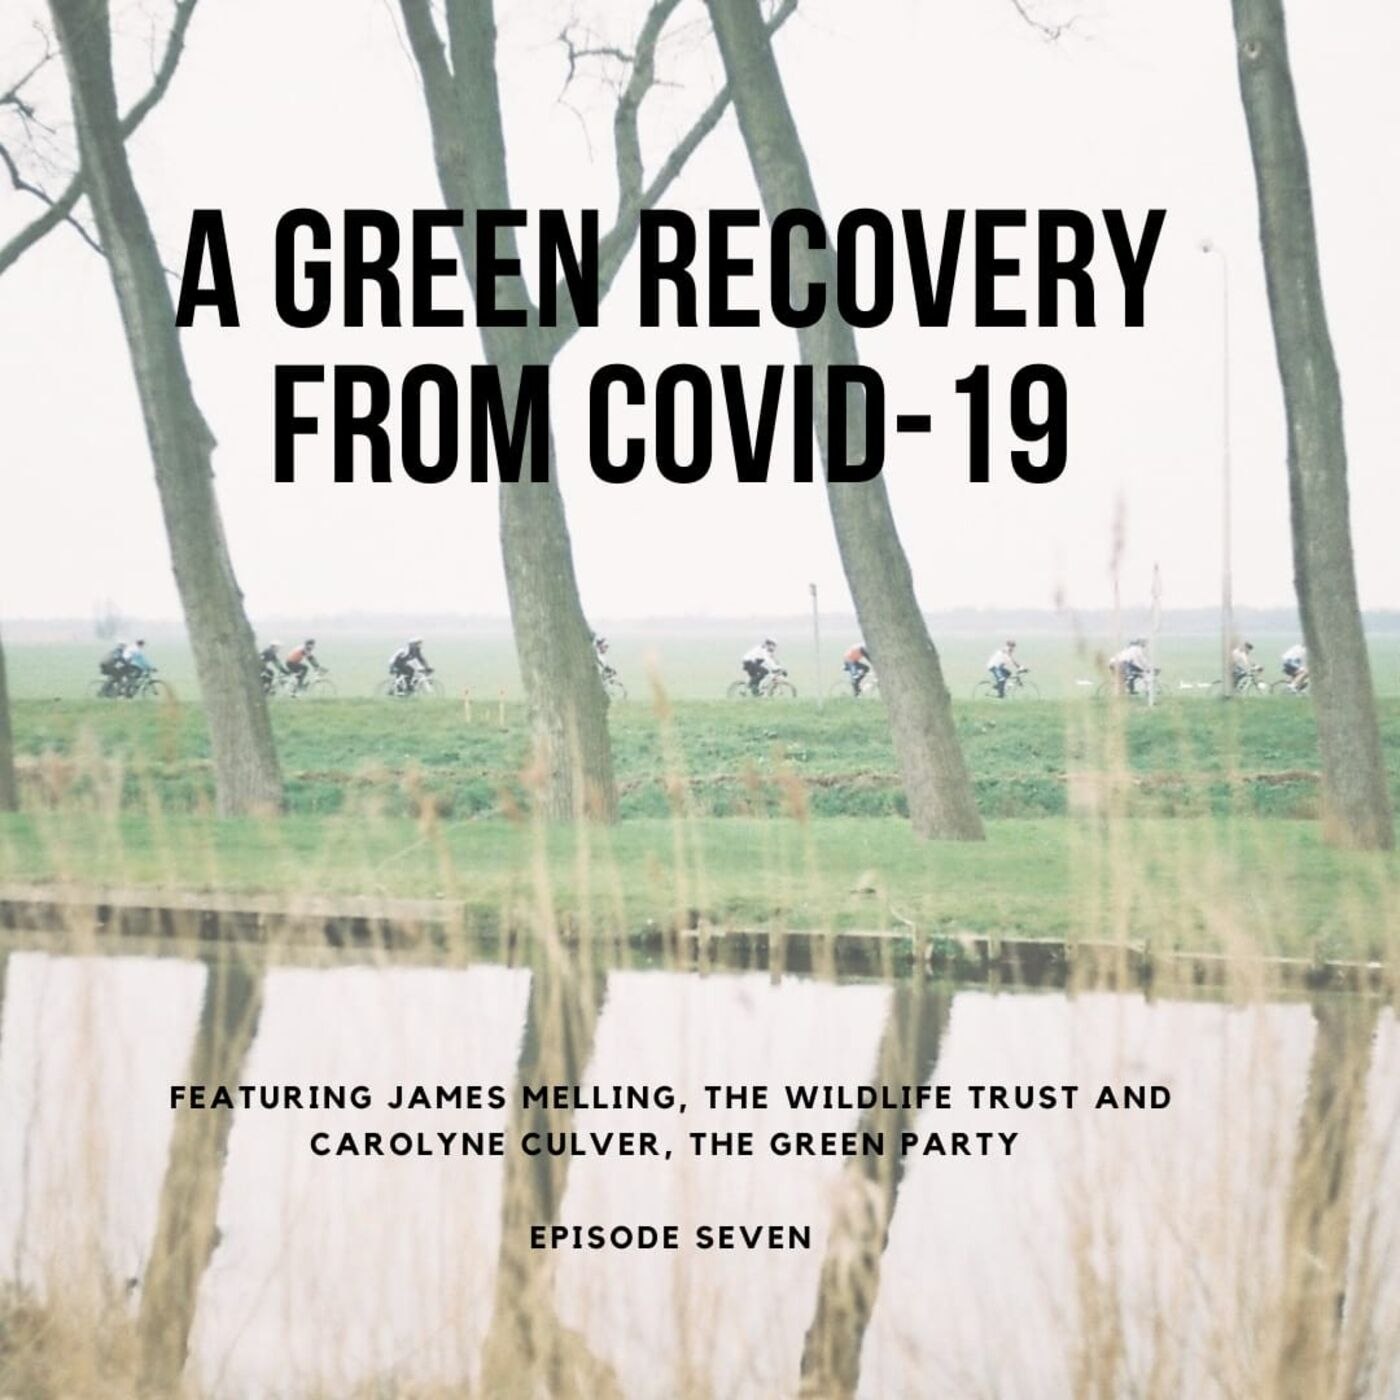 A Green Recovery from Covid-19 with James Melling & Carolyne Culver